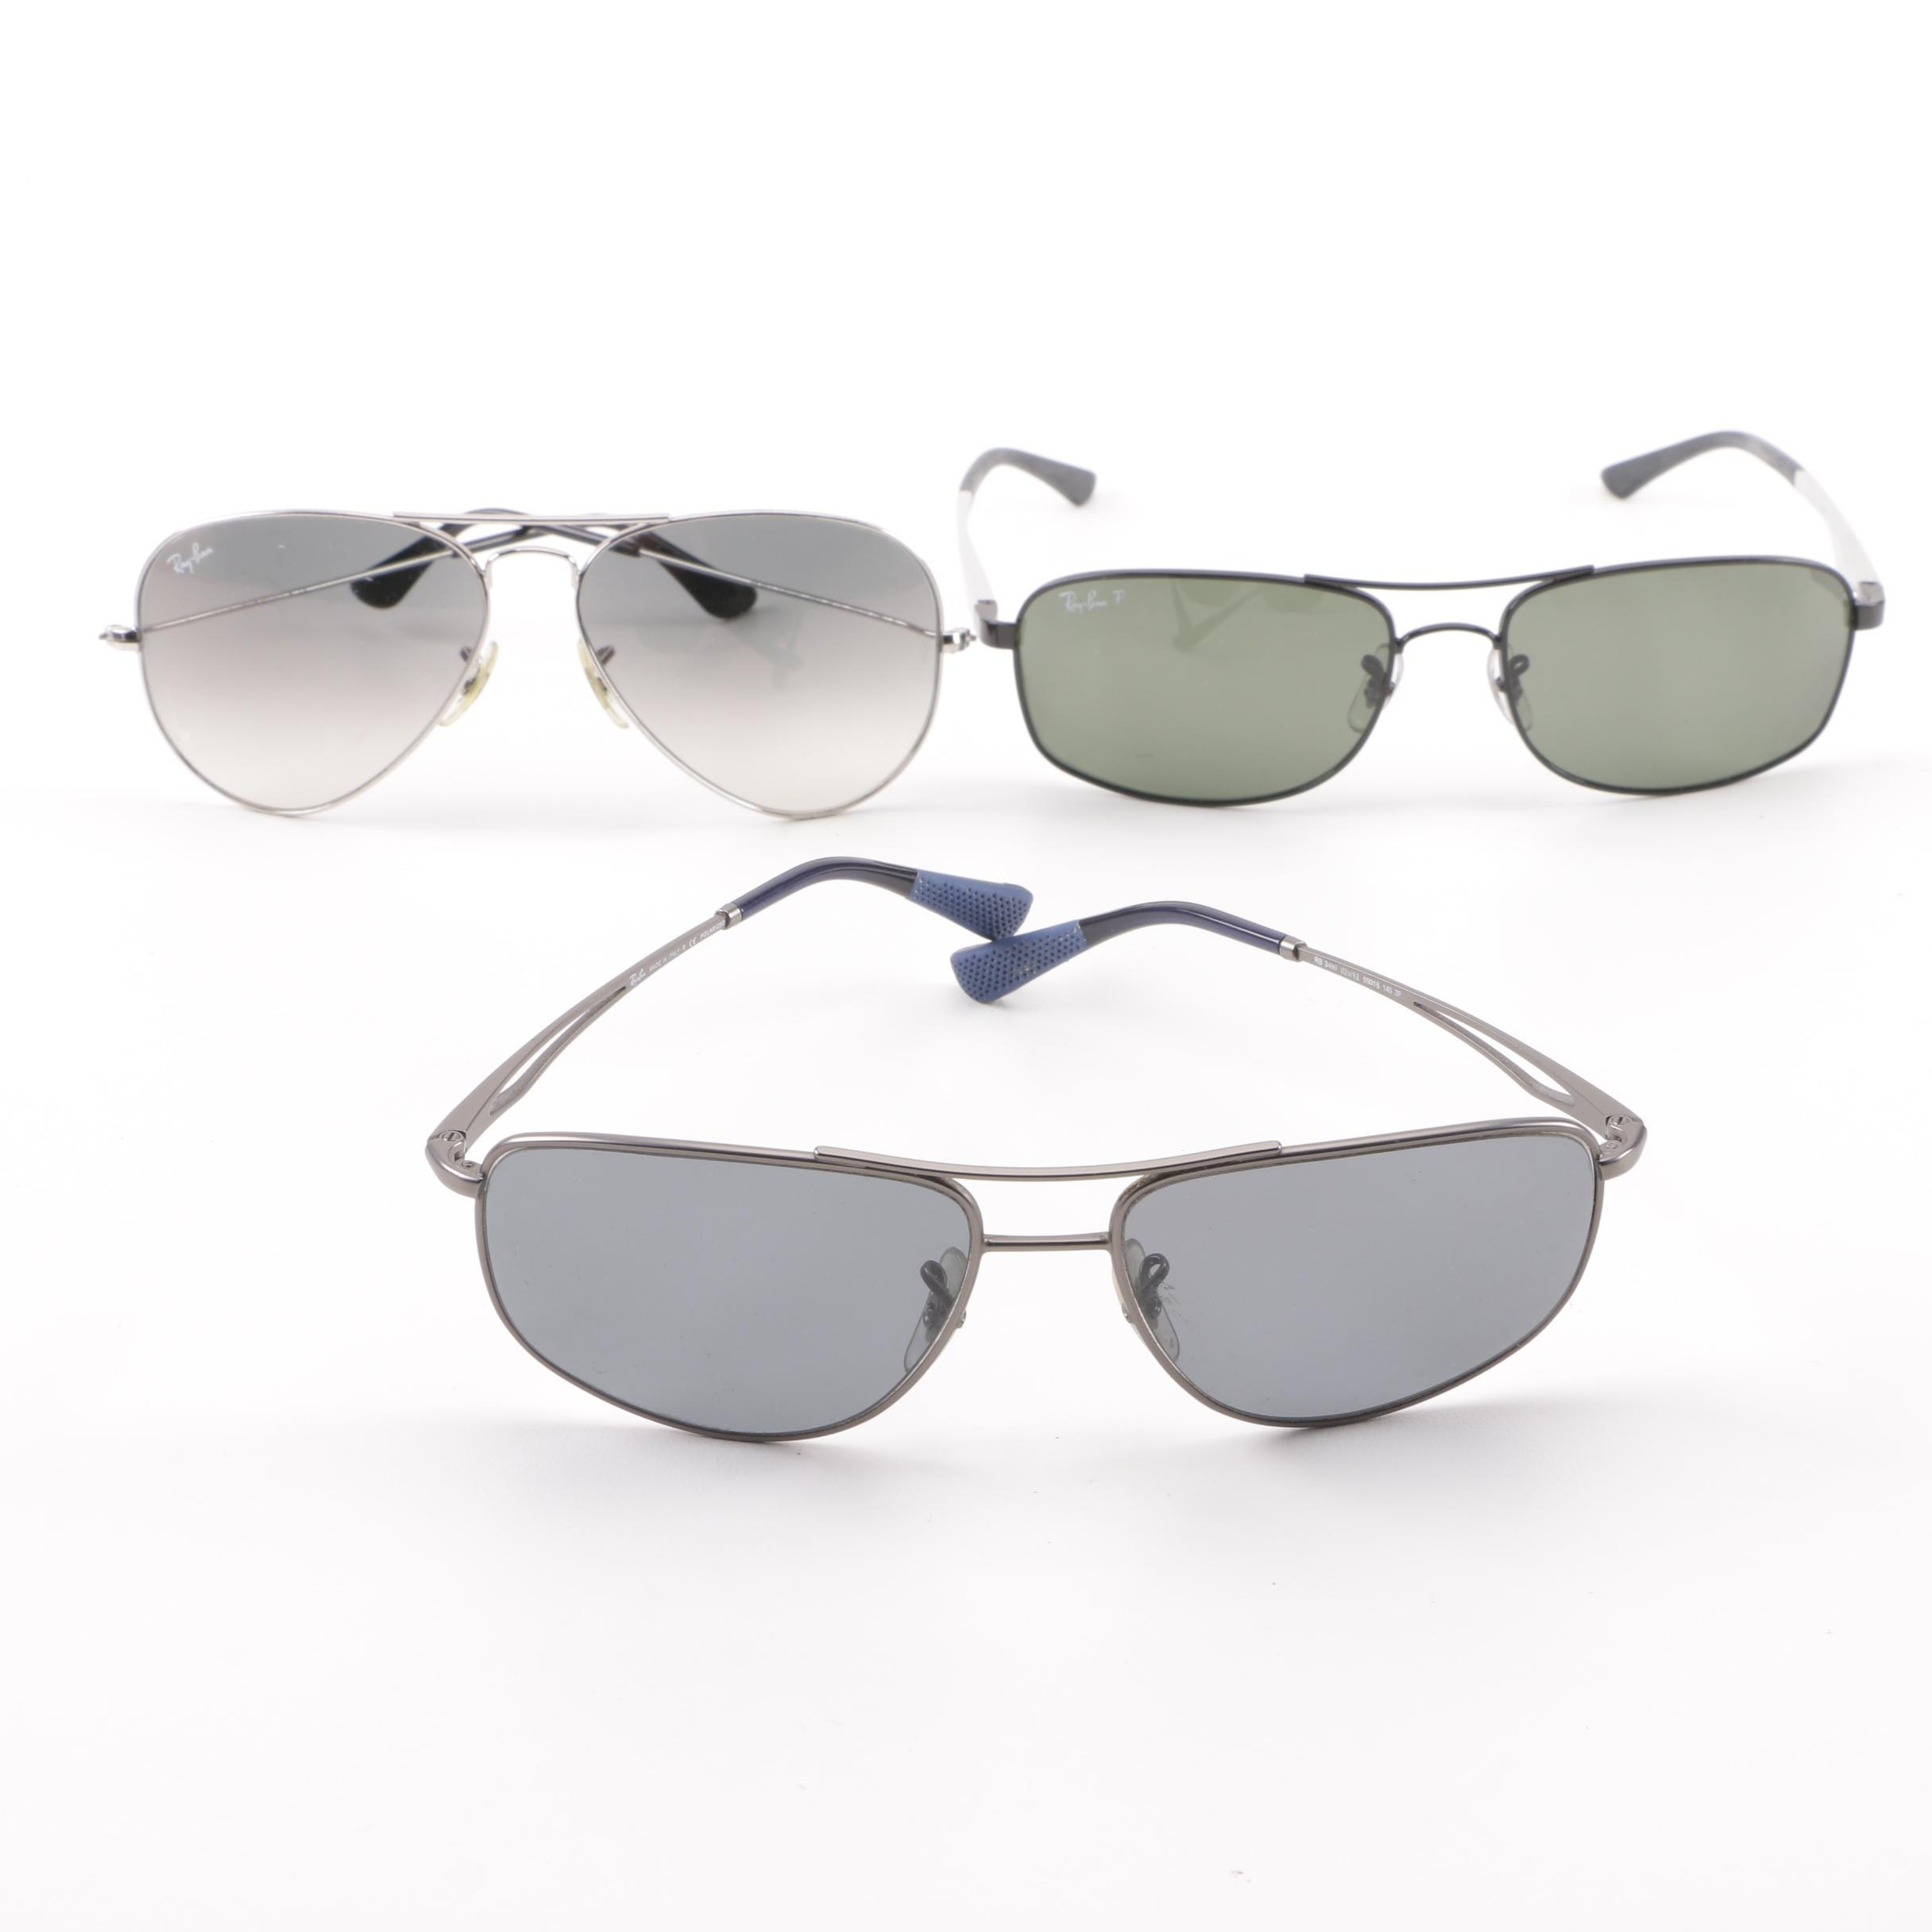 Ray-Ban Aviator and Metal-Framed Sunglasses including Polarized Lenses